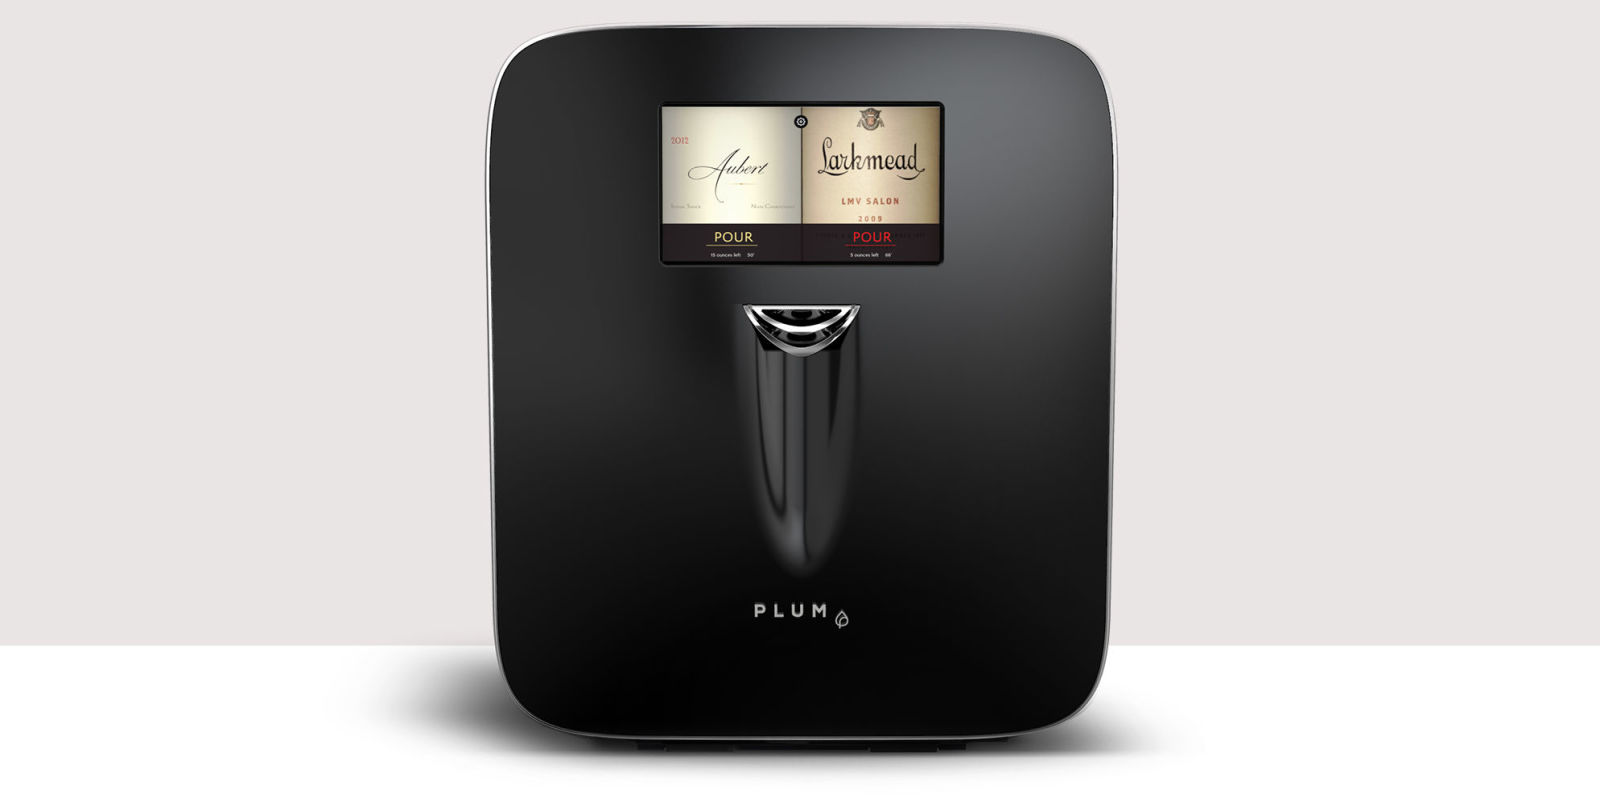 Plum Releases The First Ever Automatic Wine Dispenser 2018